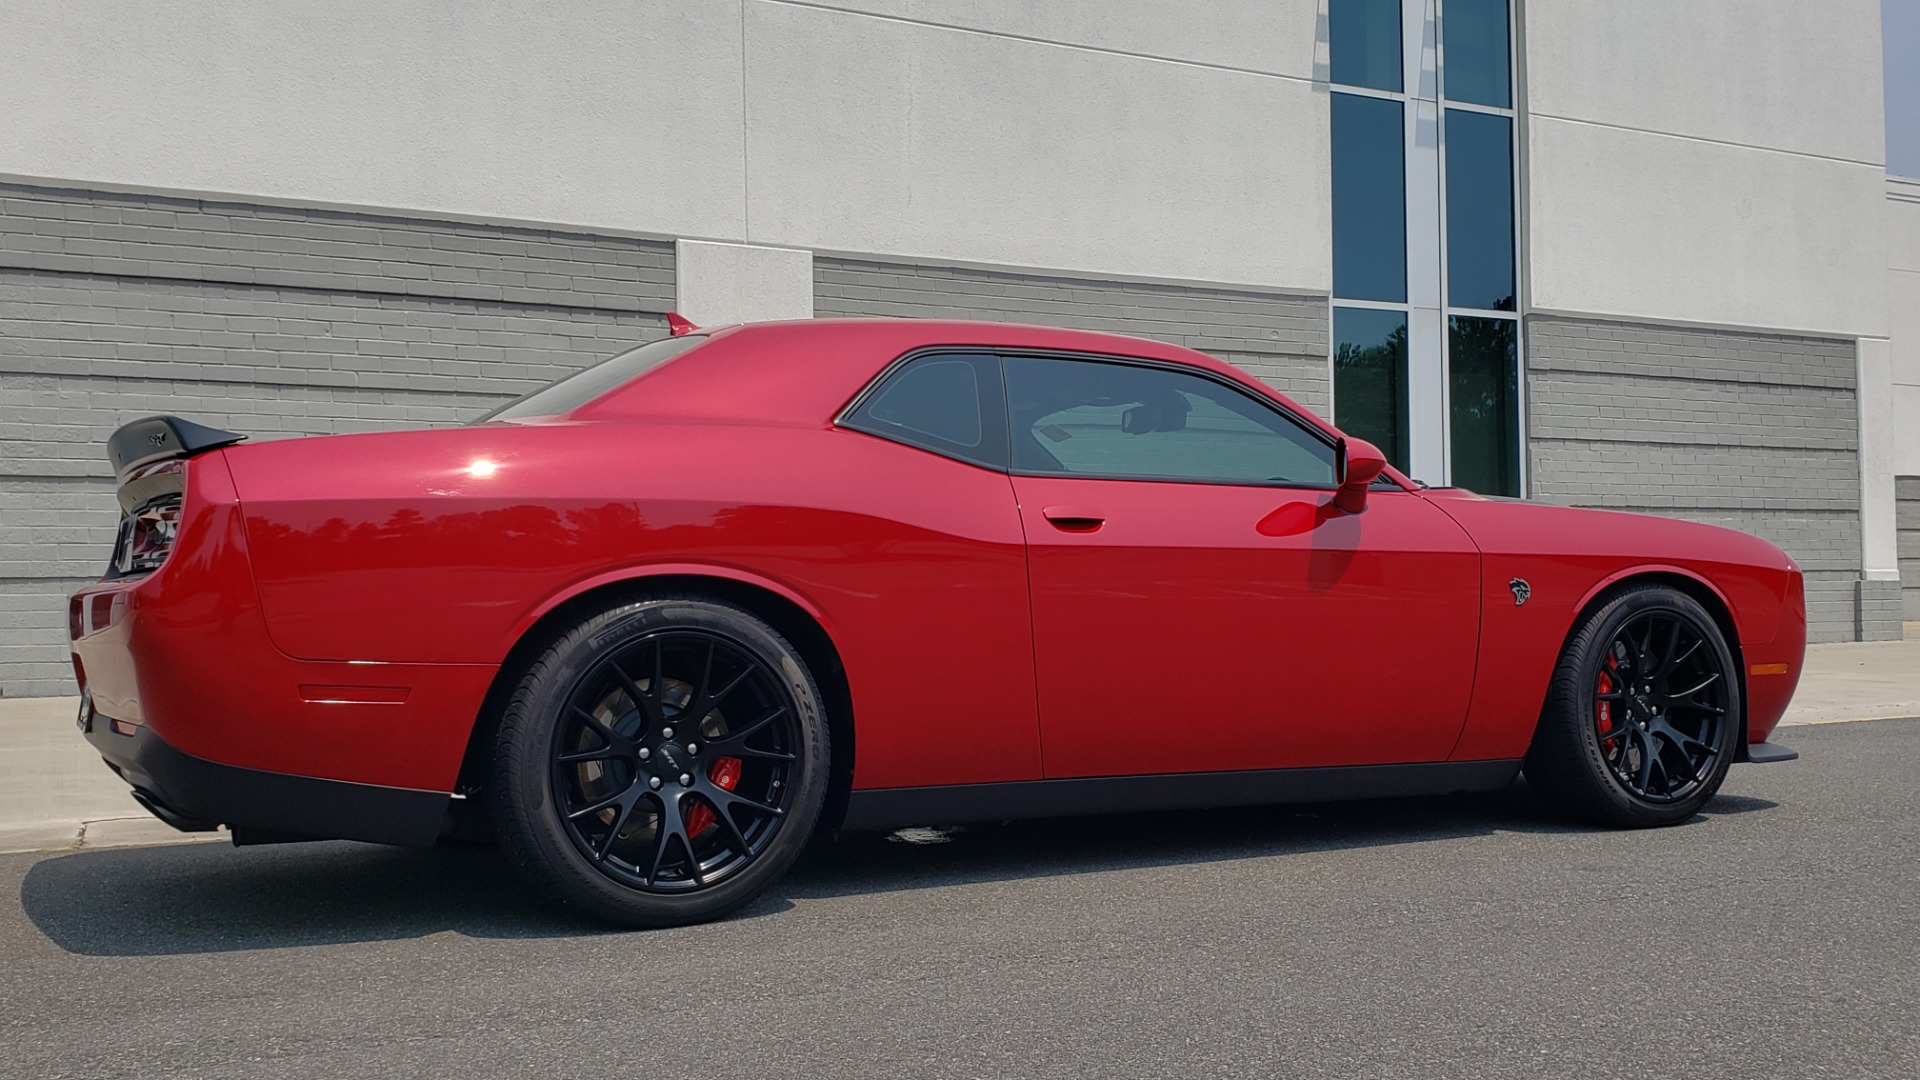 Used 2016 Dodge CHALLENGER SRT HELLCAT 707HP COUPE / AUTO / NAV / SUNROOF / H/K SND / REARVIEW for sale $60,995 at Formula Imports in Charlotte NC 28227 12